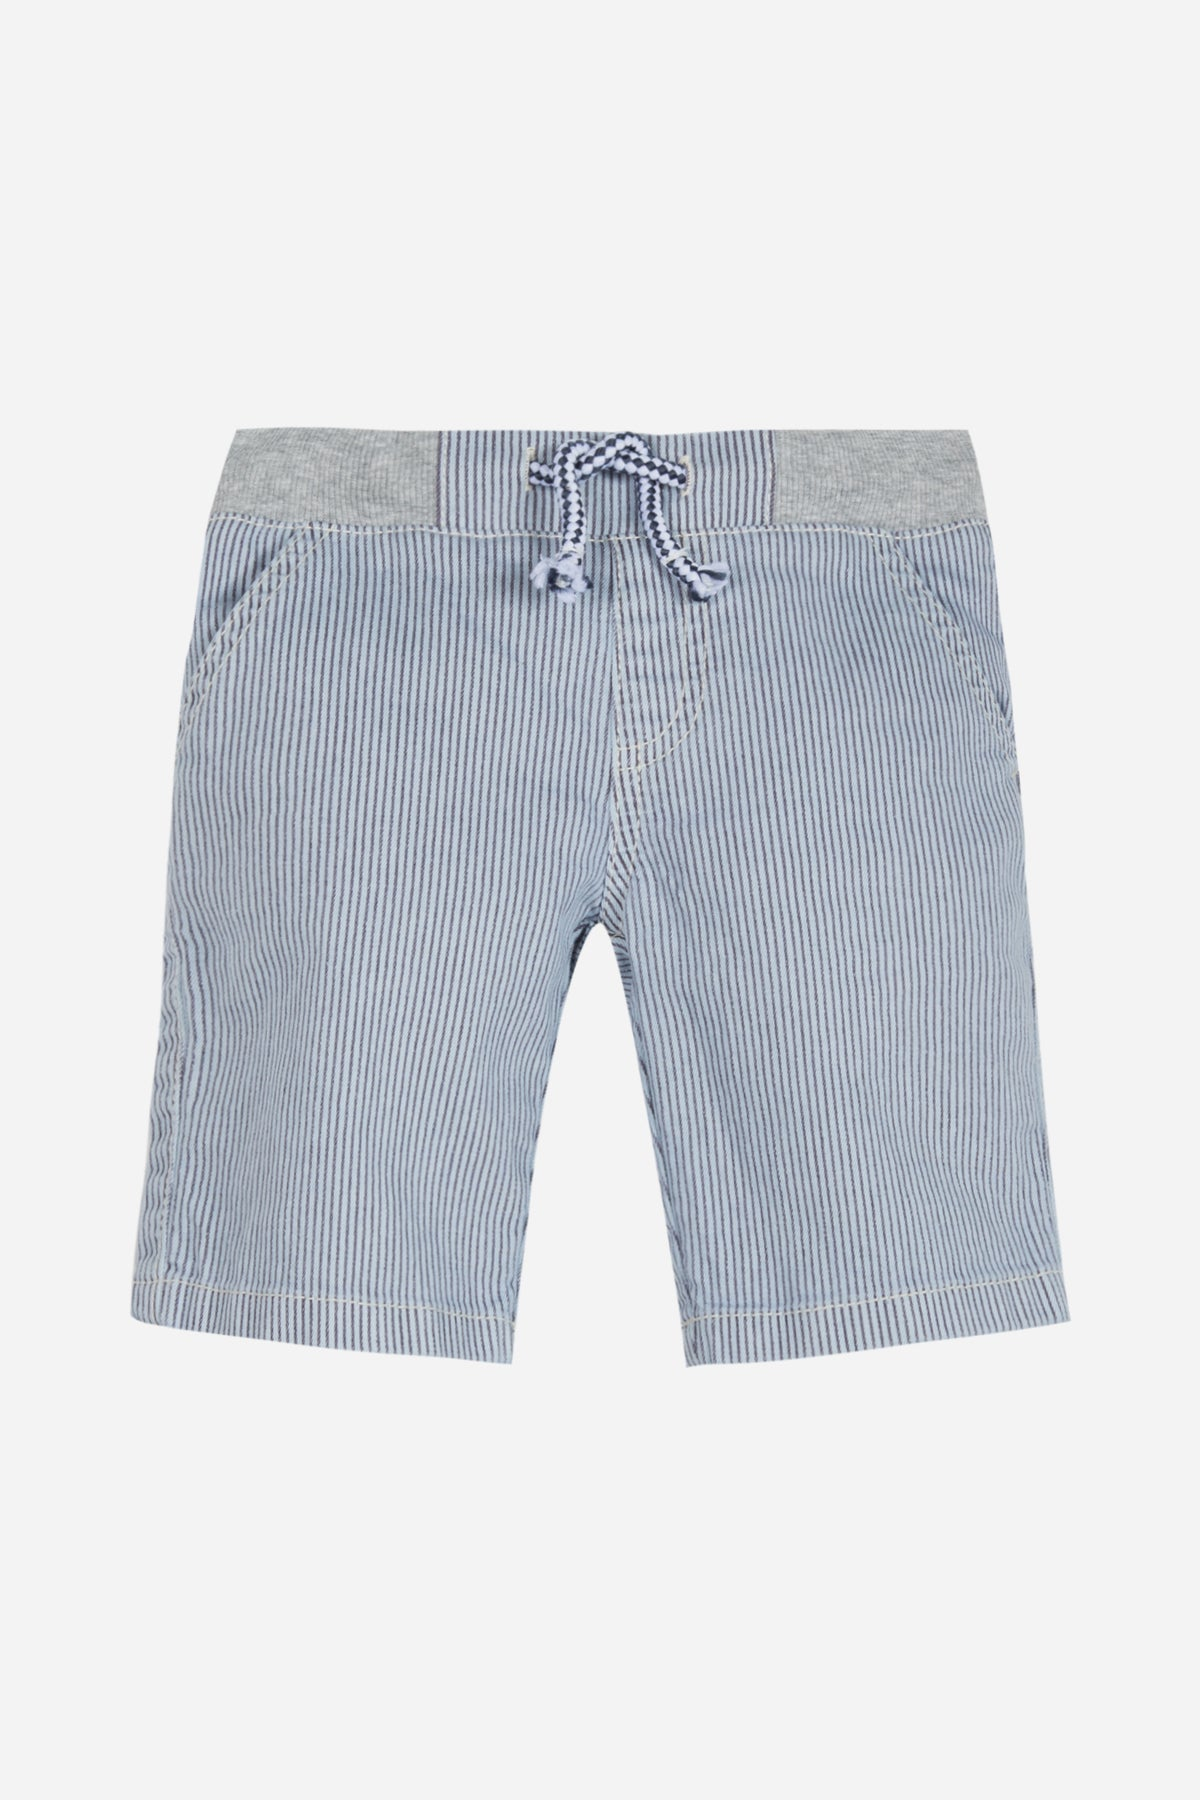 3 Pommes Baby Boys Swim Shorts